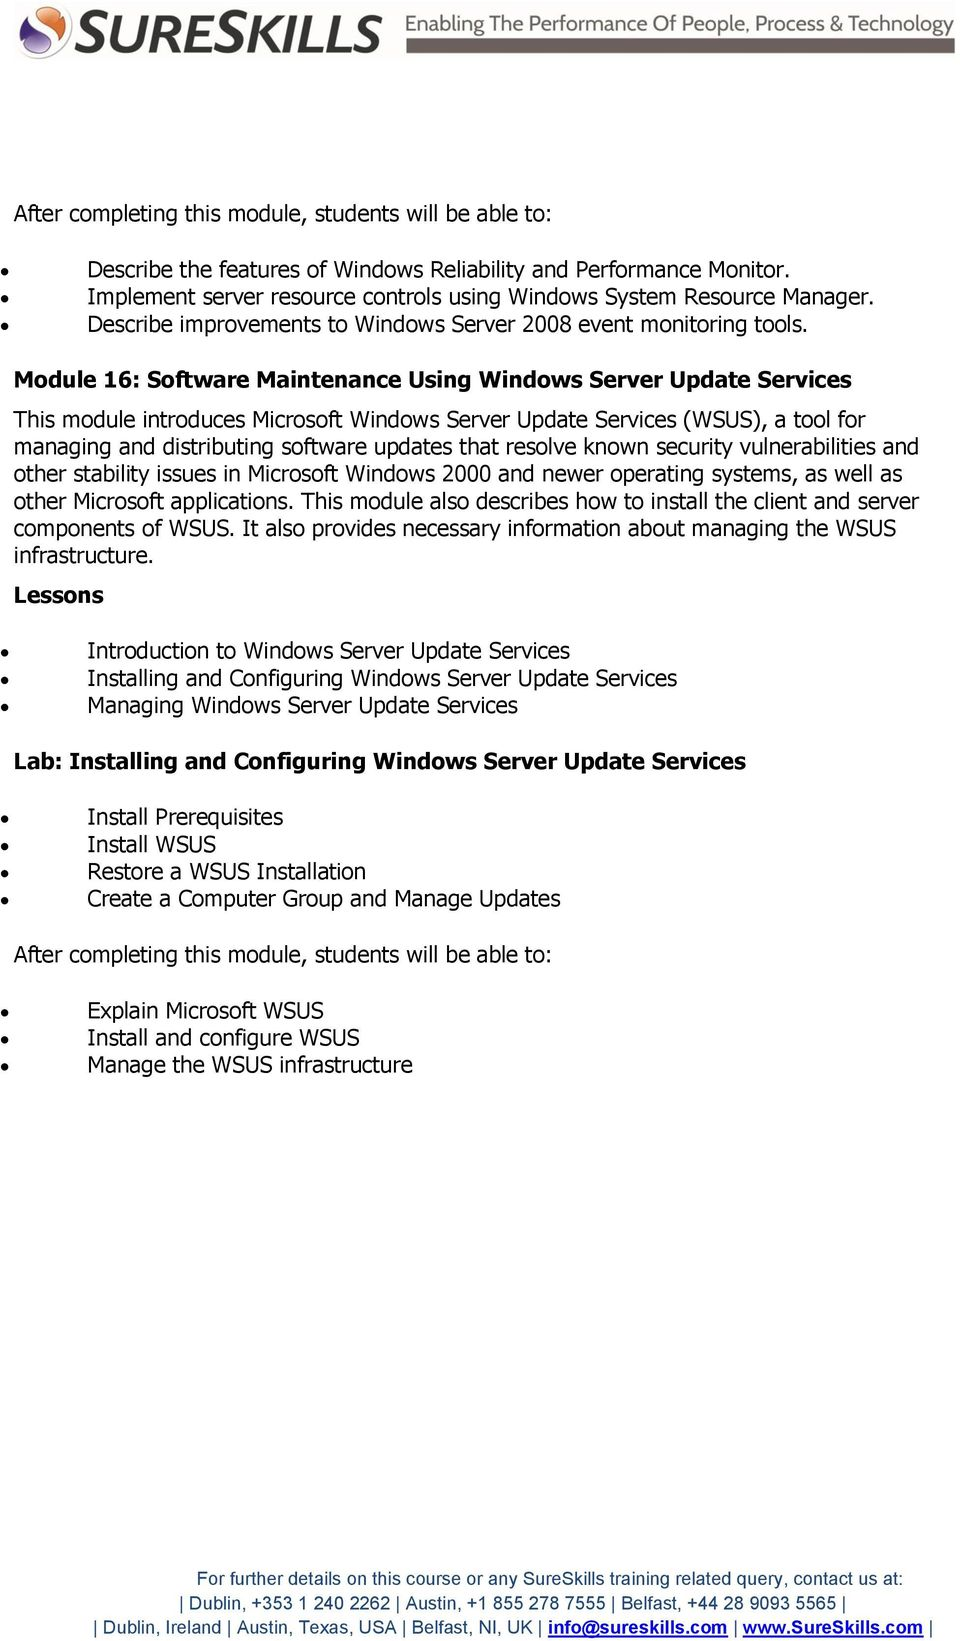 Module 16: Software Maintenance Using Windows Server Update Services This module introduces Microsoft Windows Server Update Services (WSUS), a tool for managing and distributing software updates that